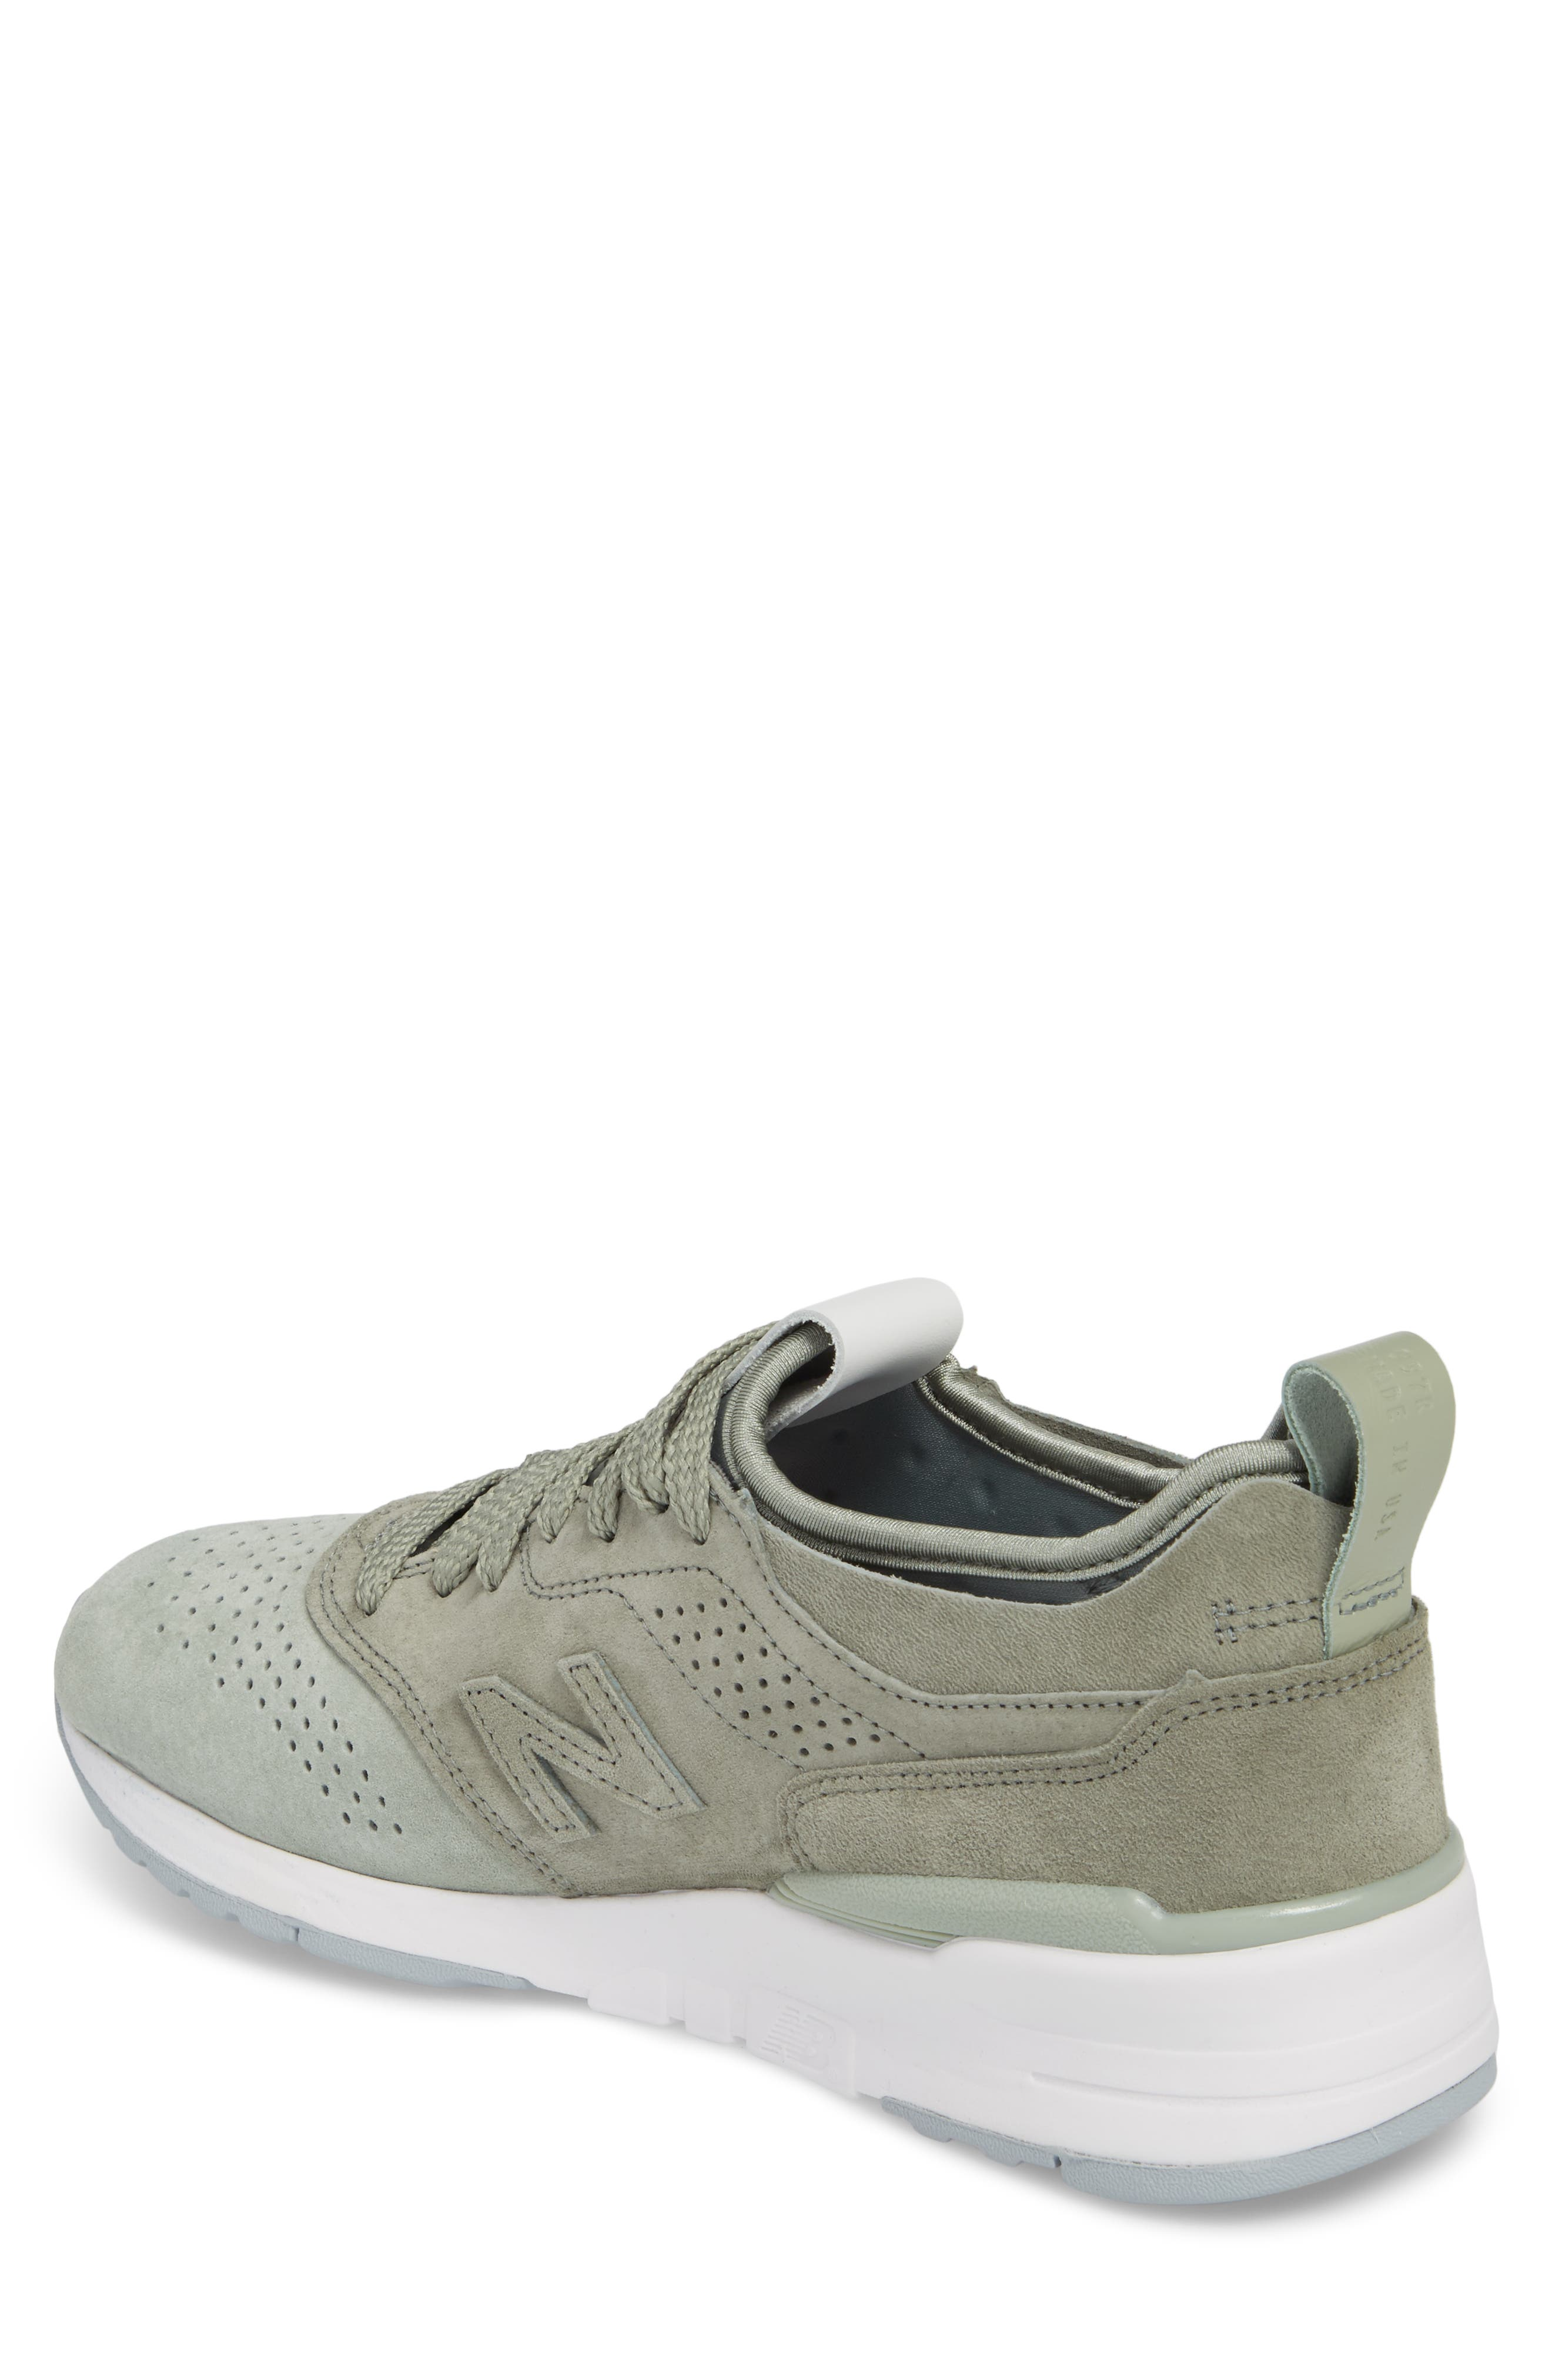 997R Perforated Sneaker,                             Alternate thumbnail 2, color,                             308